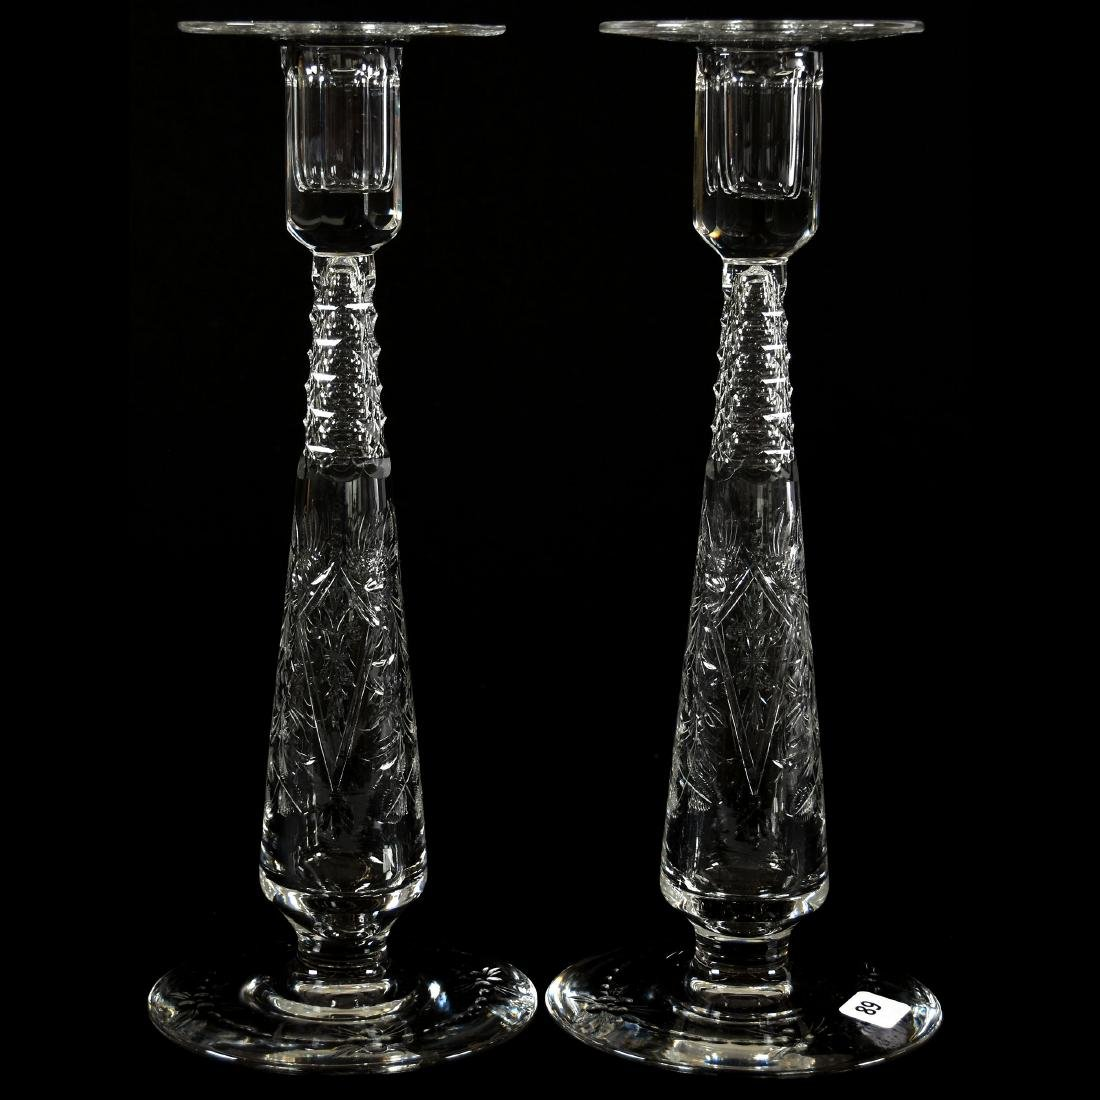 Pair Candlesticks, Signed Hawkes, Engraved Floral